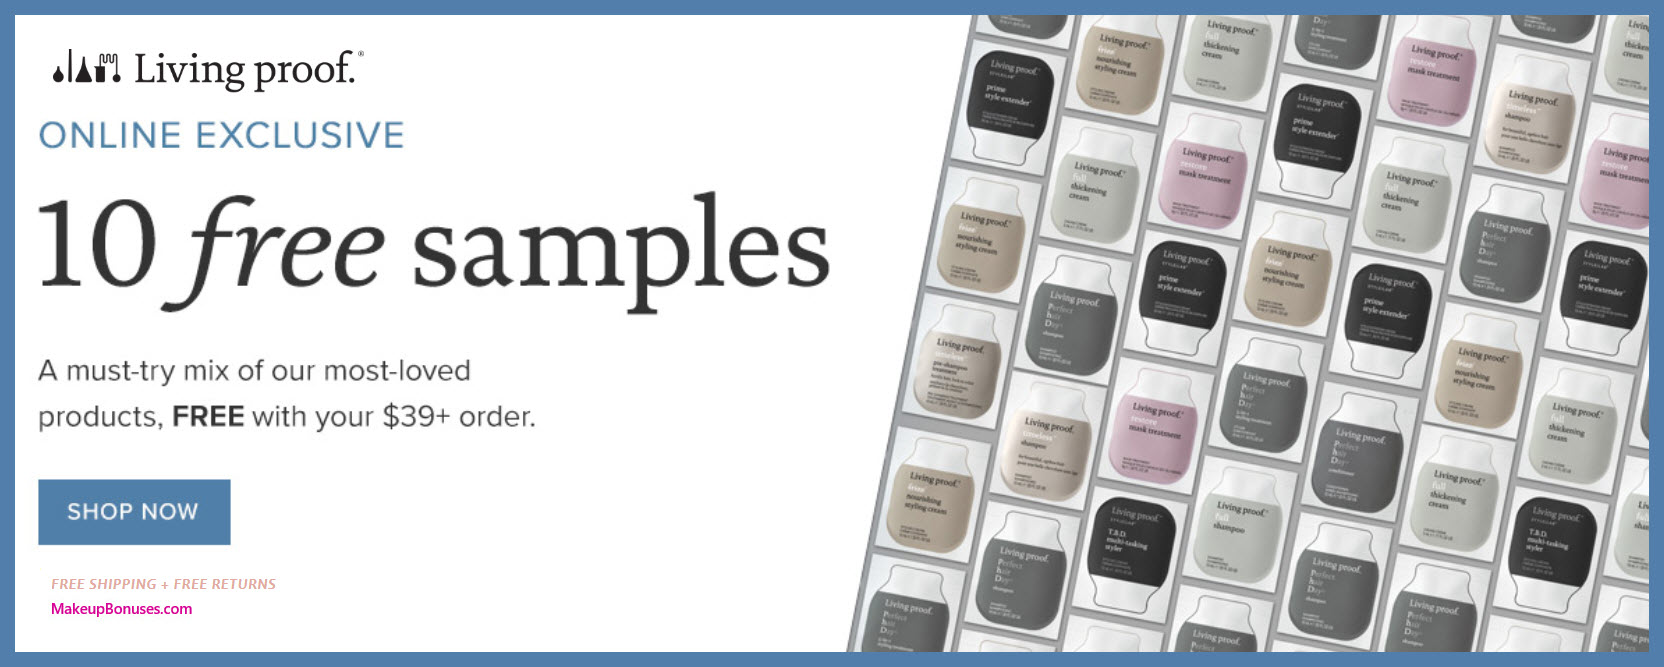 Receive a free 10-pc gift with $39 Living Proof purchase